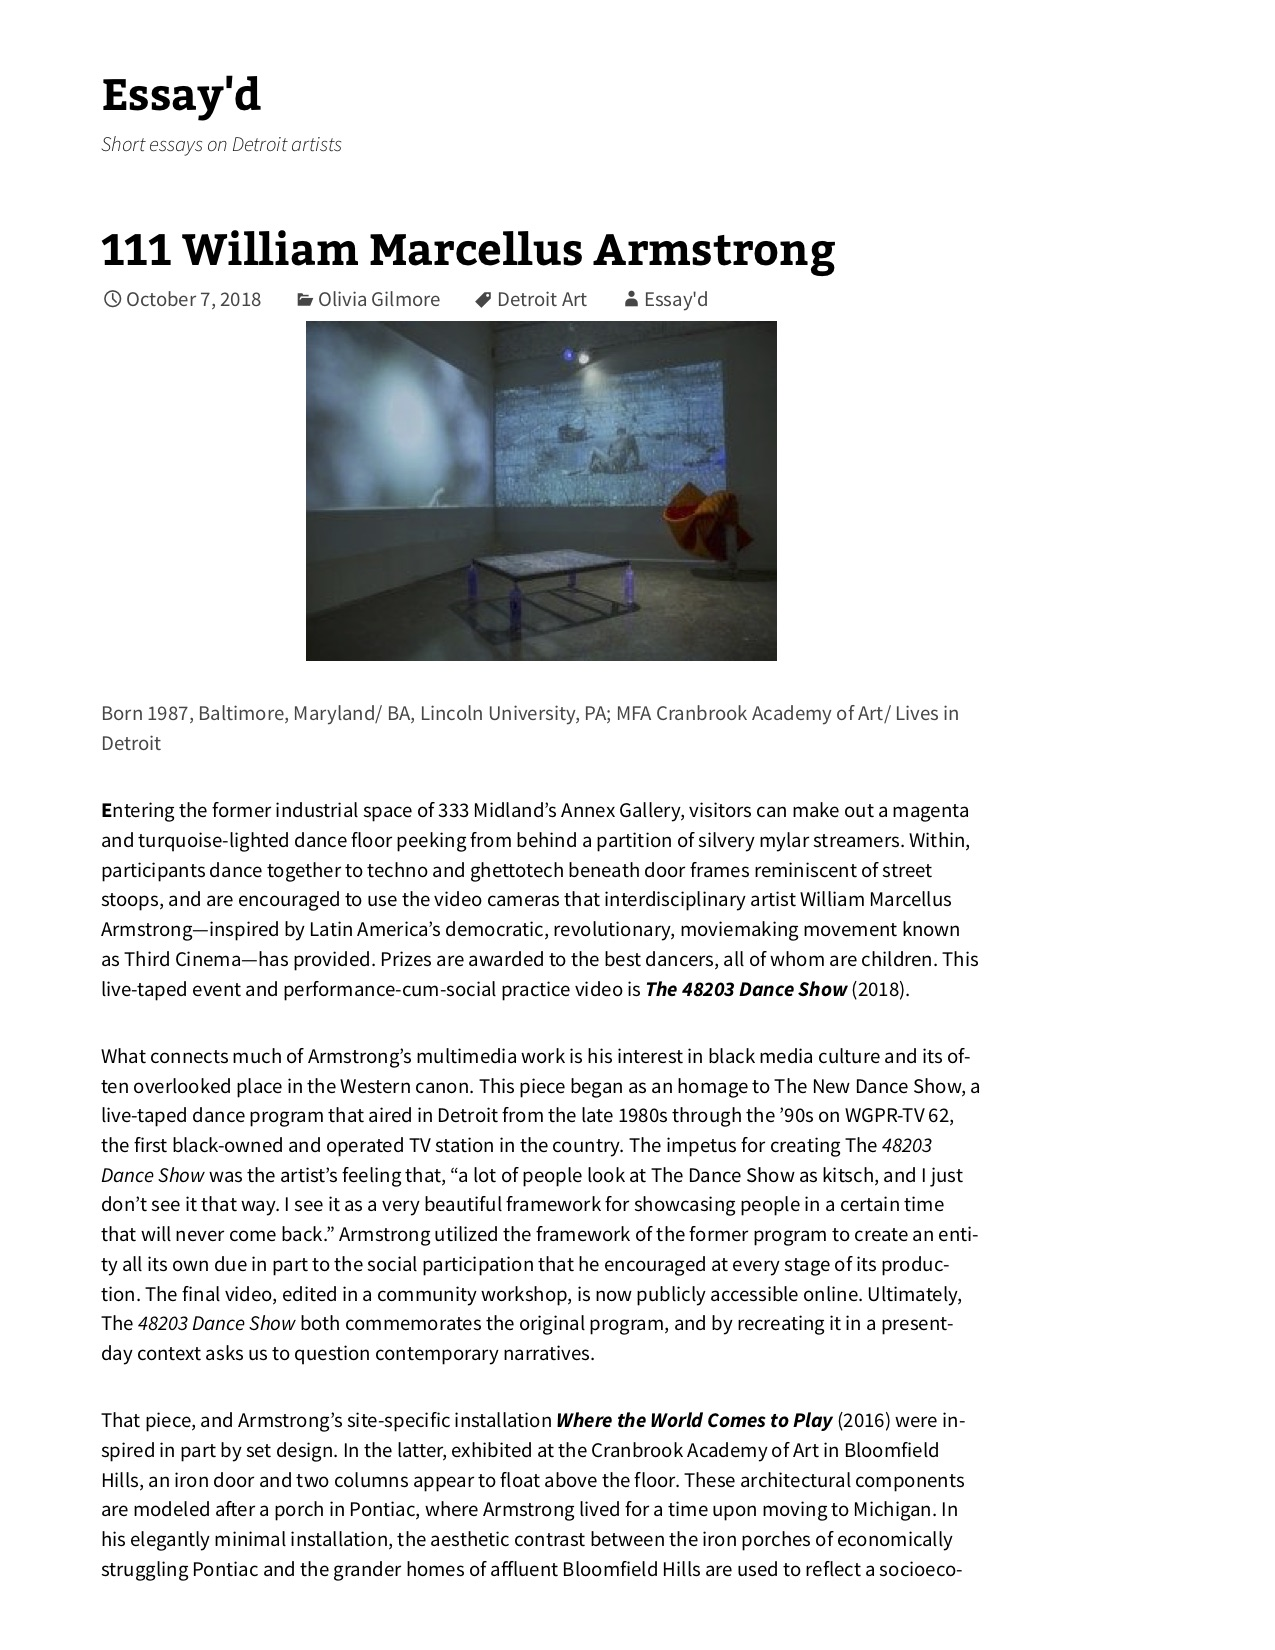 111 William Marcellus Armstrong 5| Essay'd.jpg